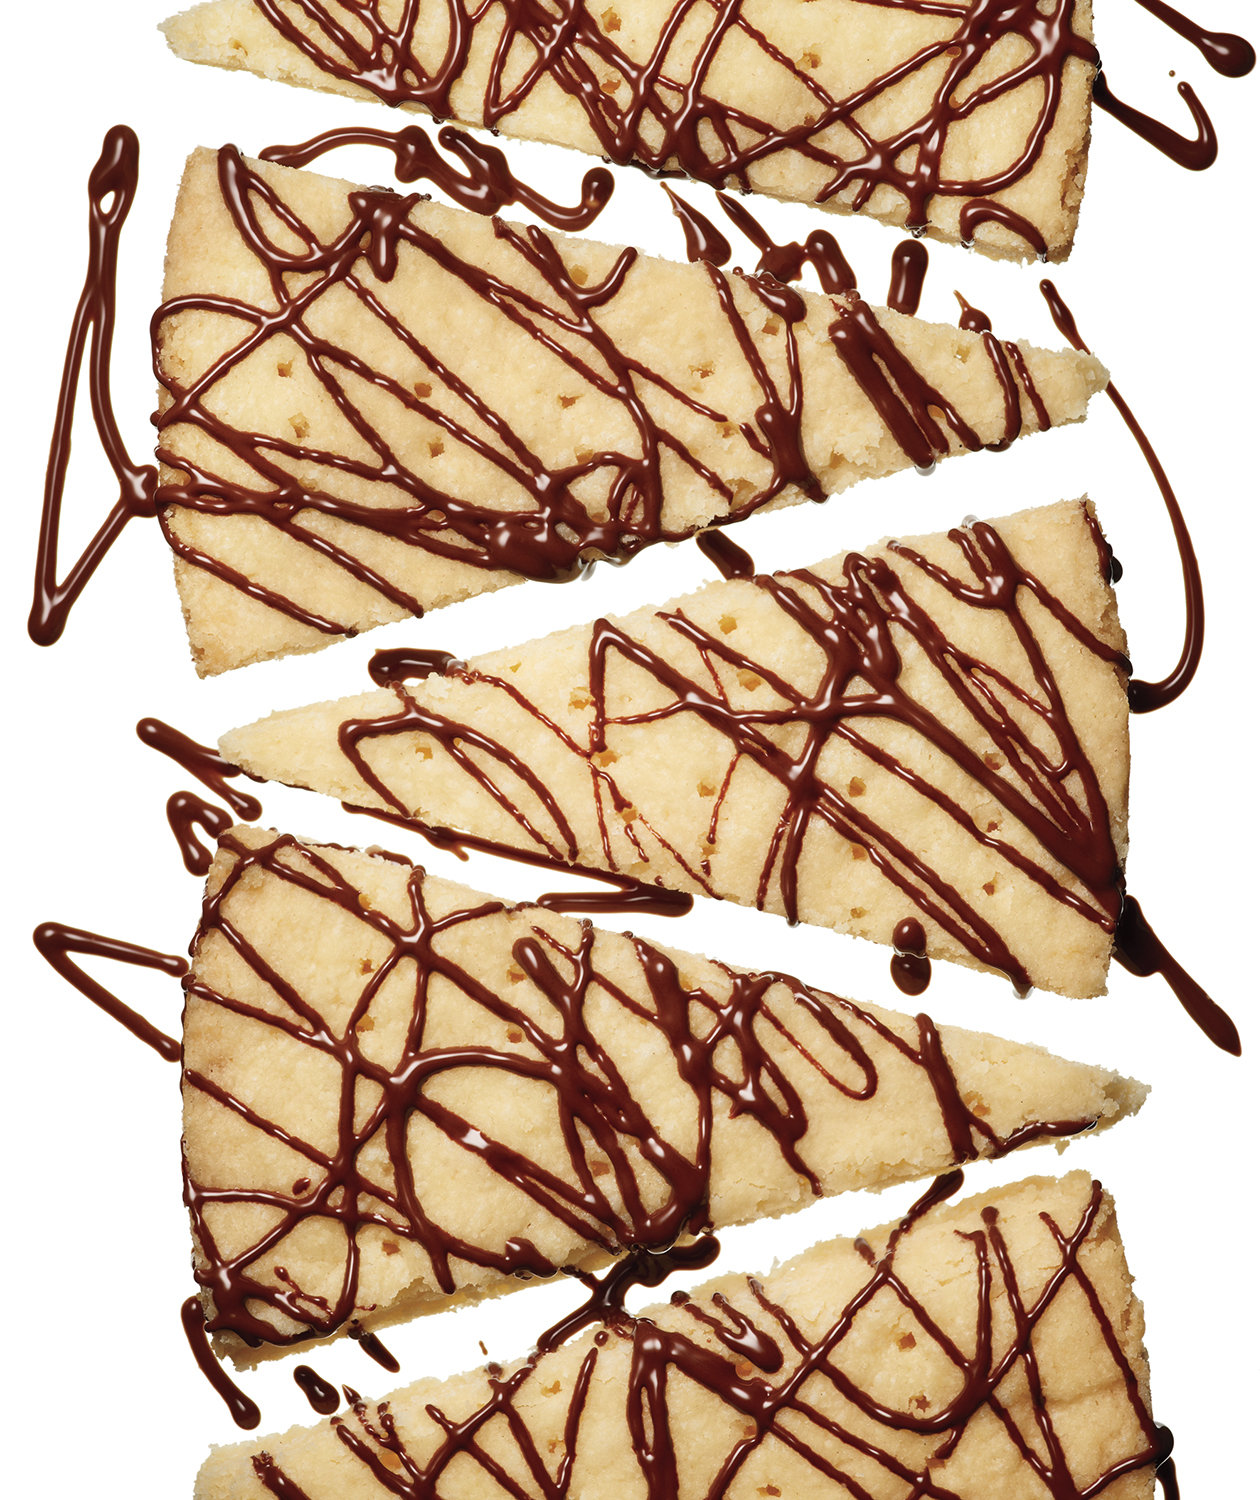 chocolate-drizzled-shortbread-cookies